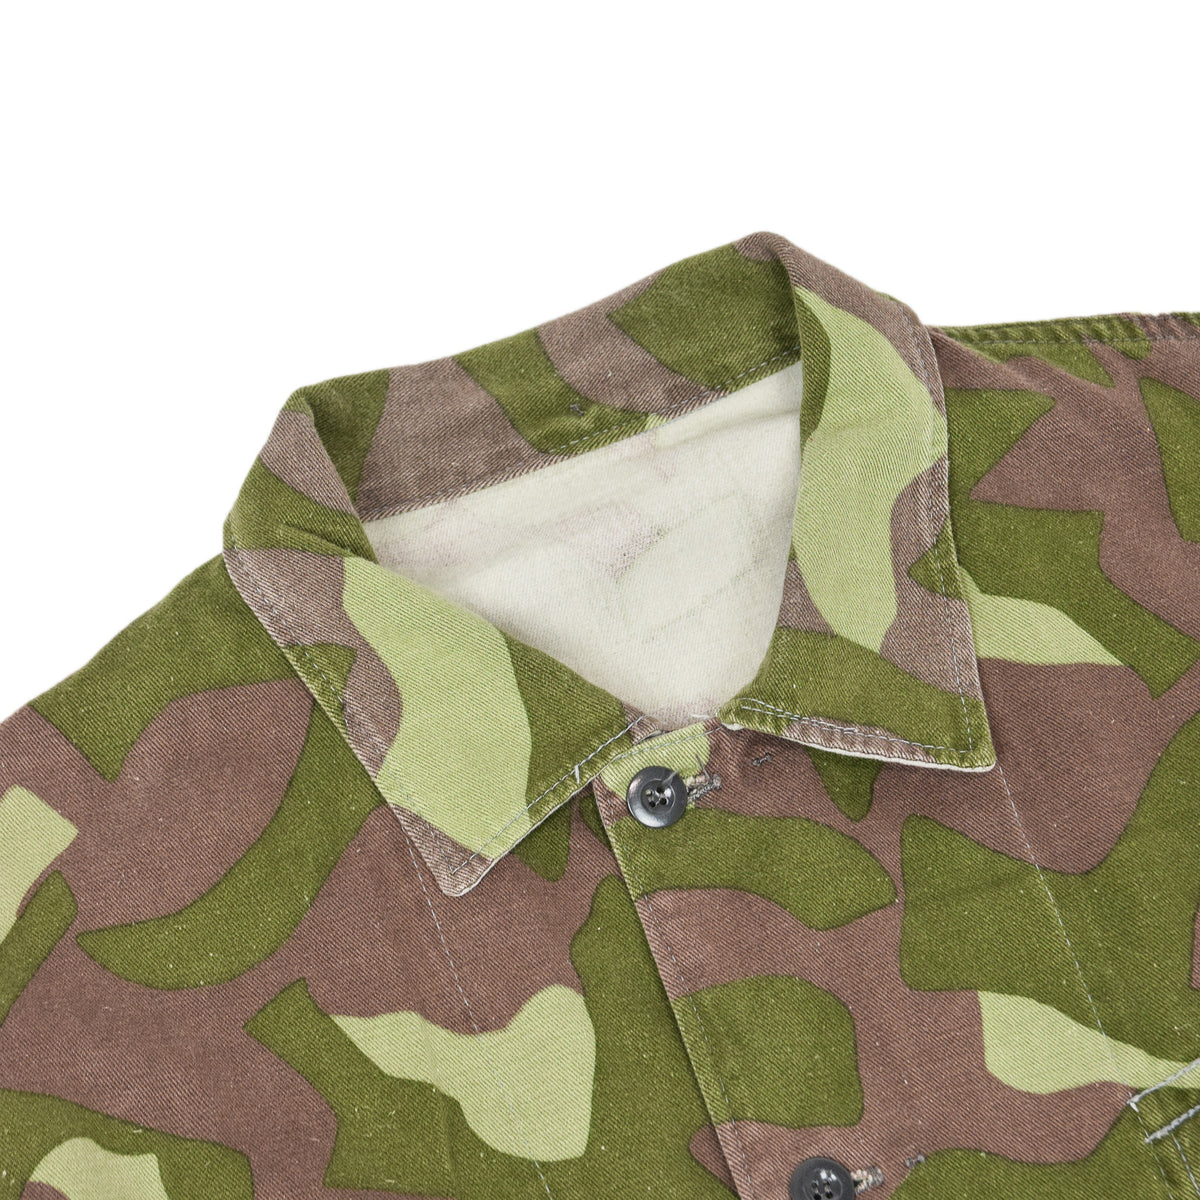 Vintage 70s Military Finnish Army Green Camo Mountain Field Jacket XL collar